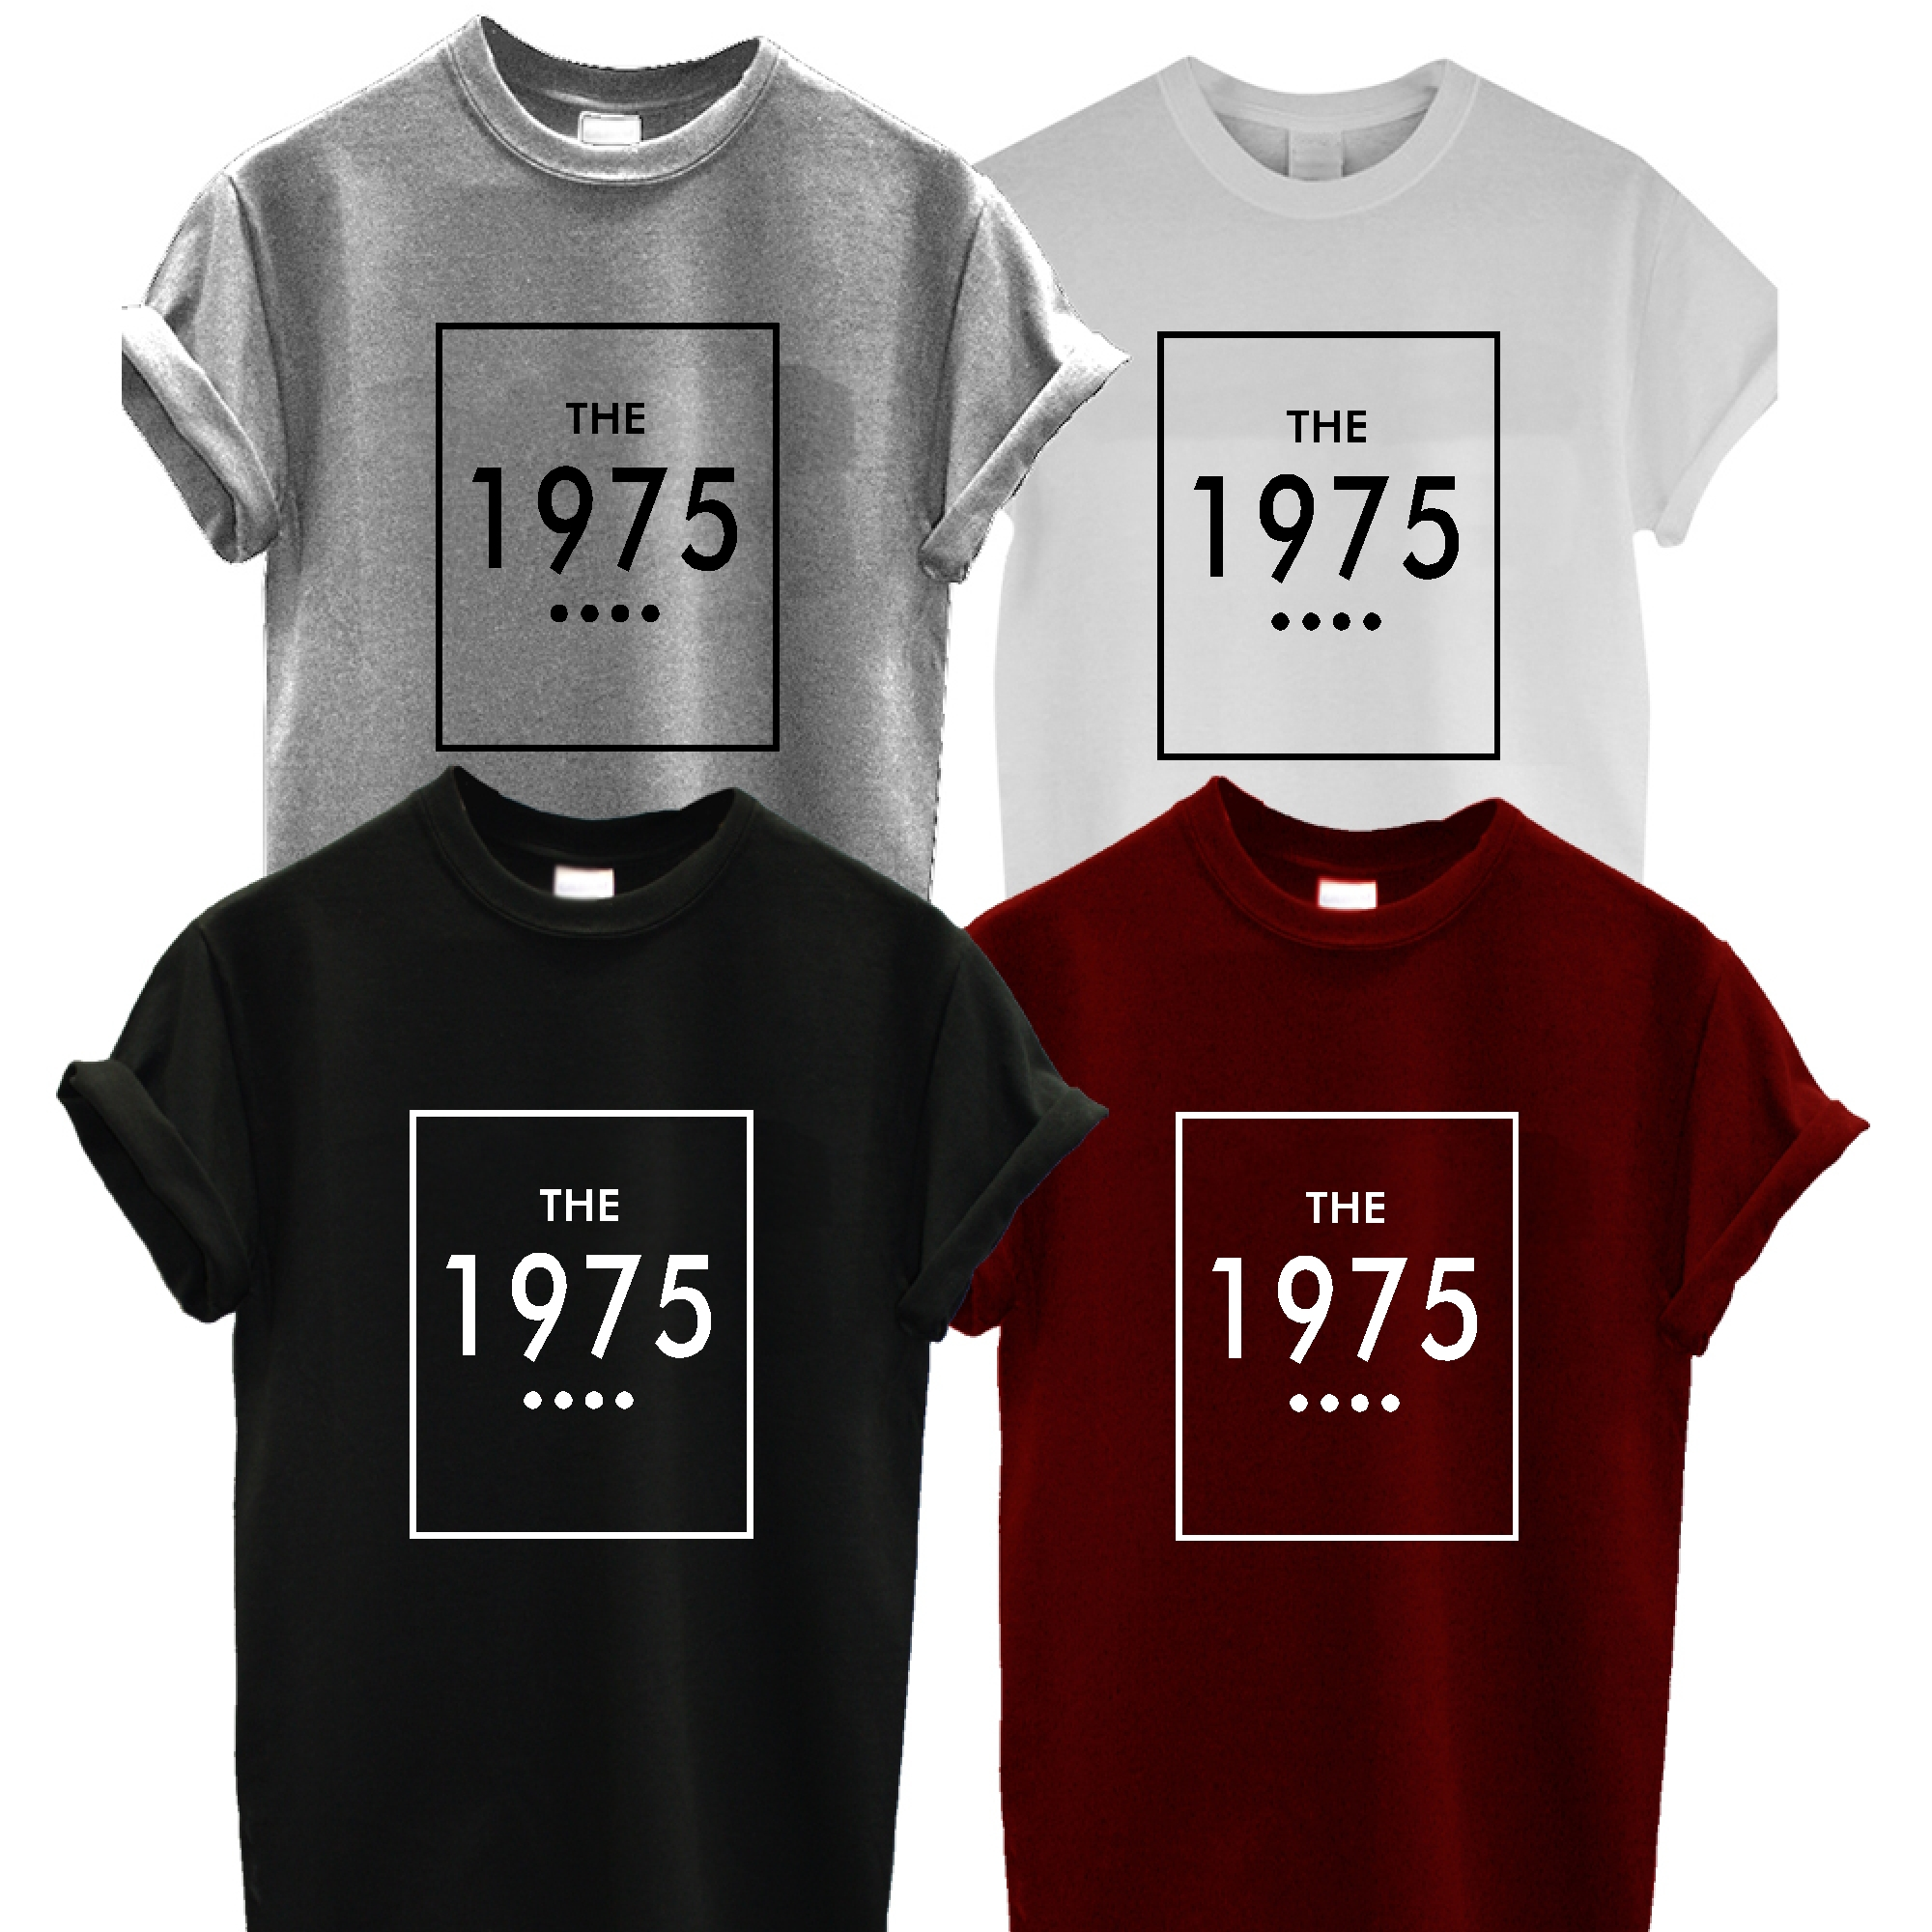 9757cd939 The 1975 Band Tshirt shirt Tees adult unisex gift clothing